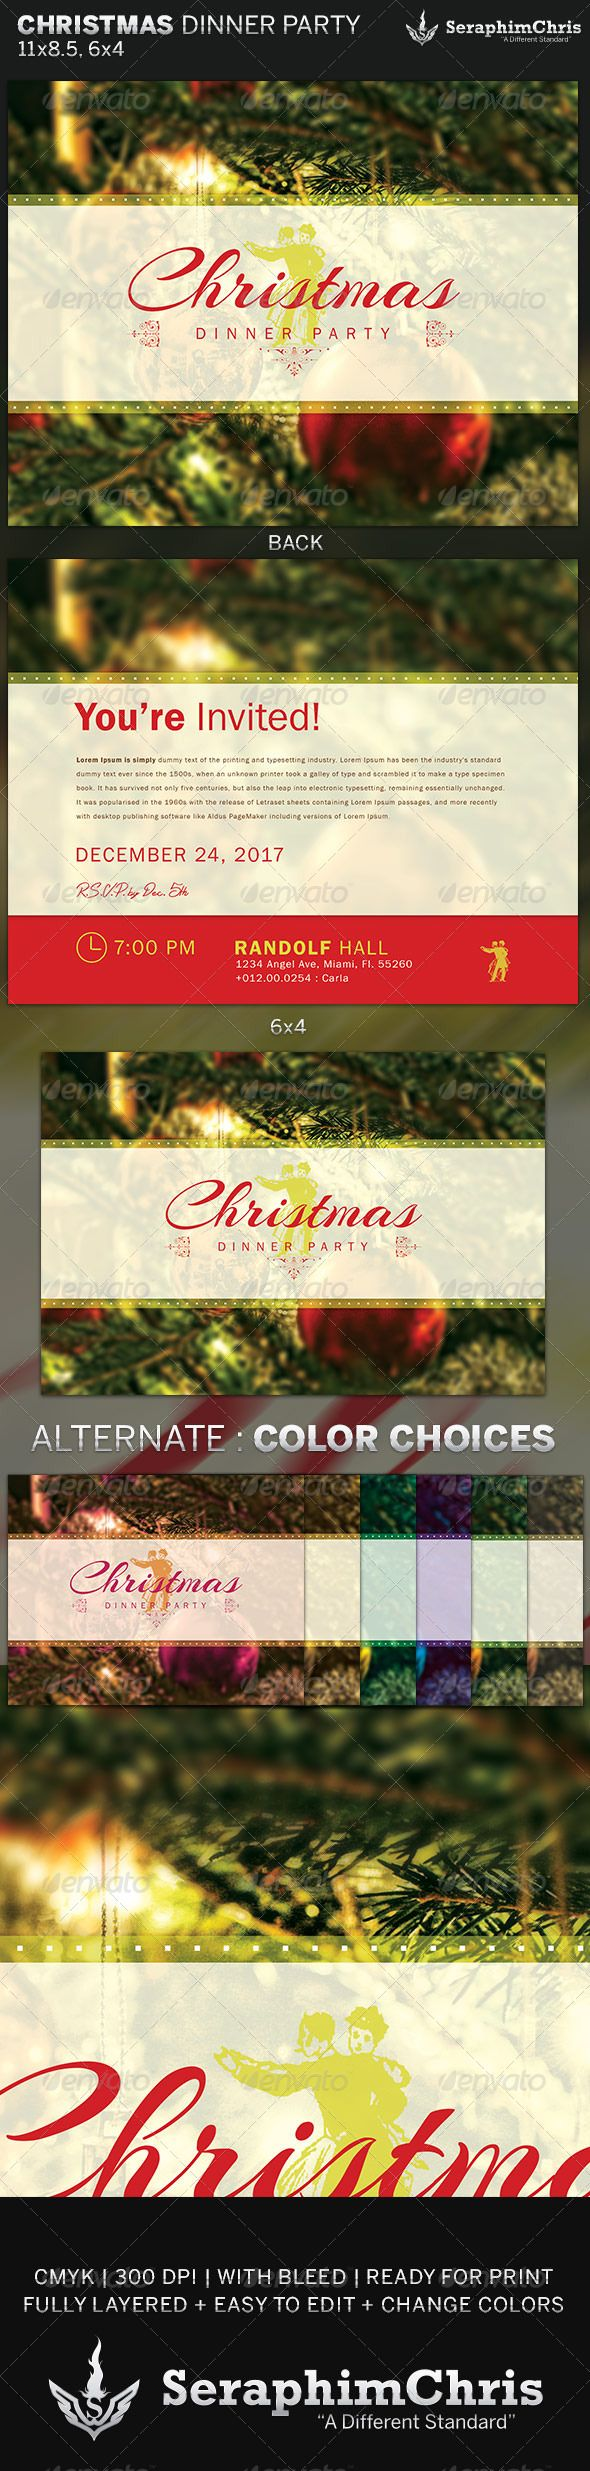 Christmas Dinner Party Flyer Invite Template 1764